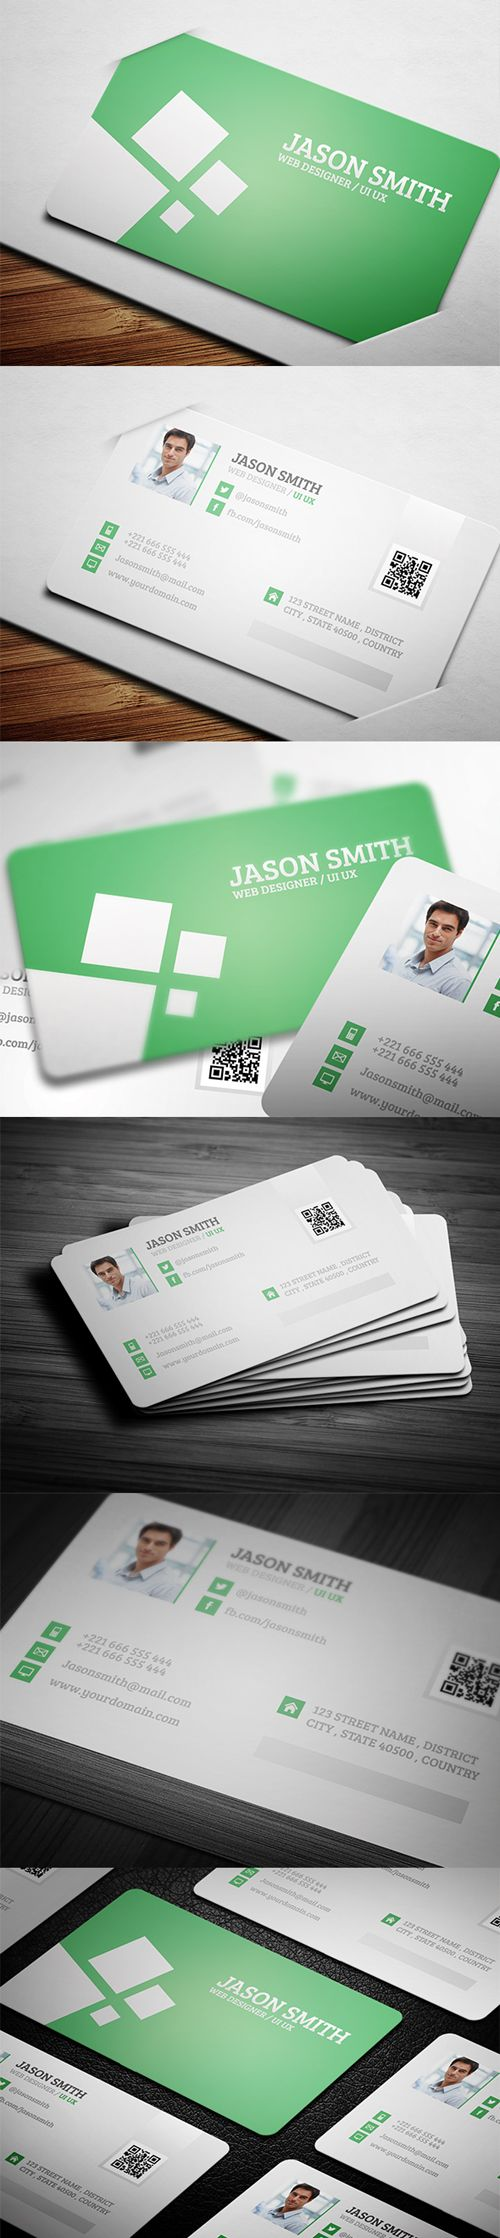 338 Best Tarjetas Personales Images On Pinterest Business Card